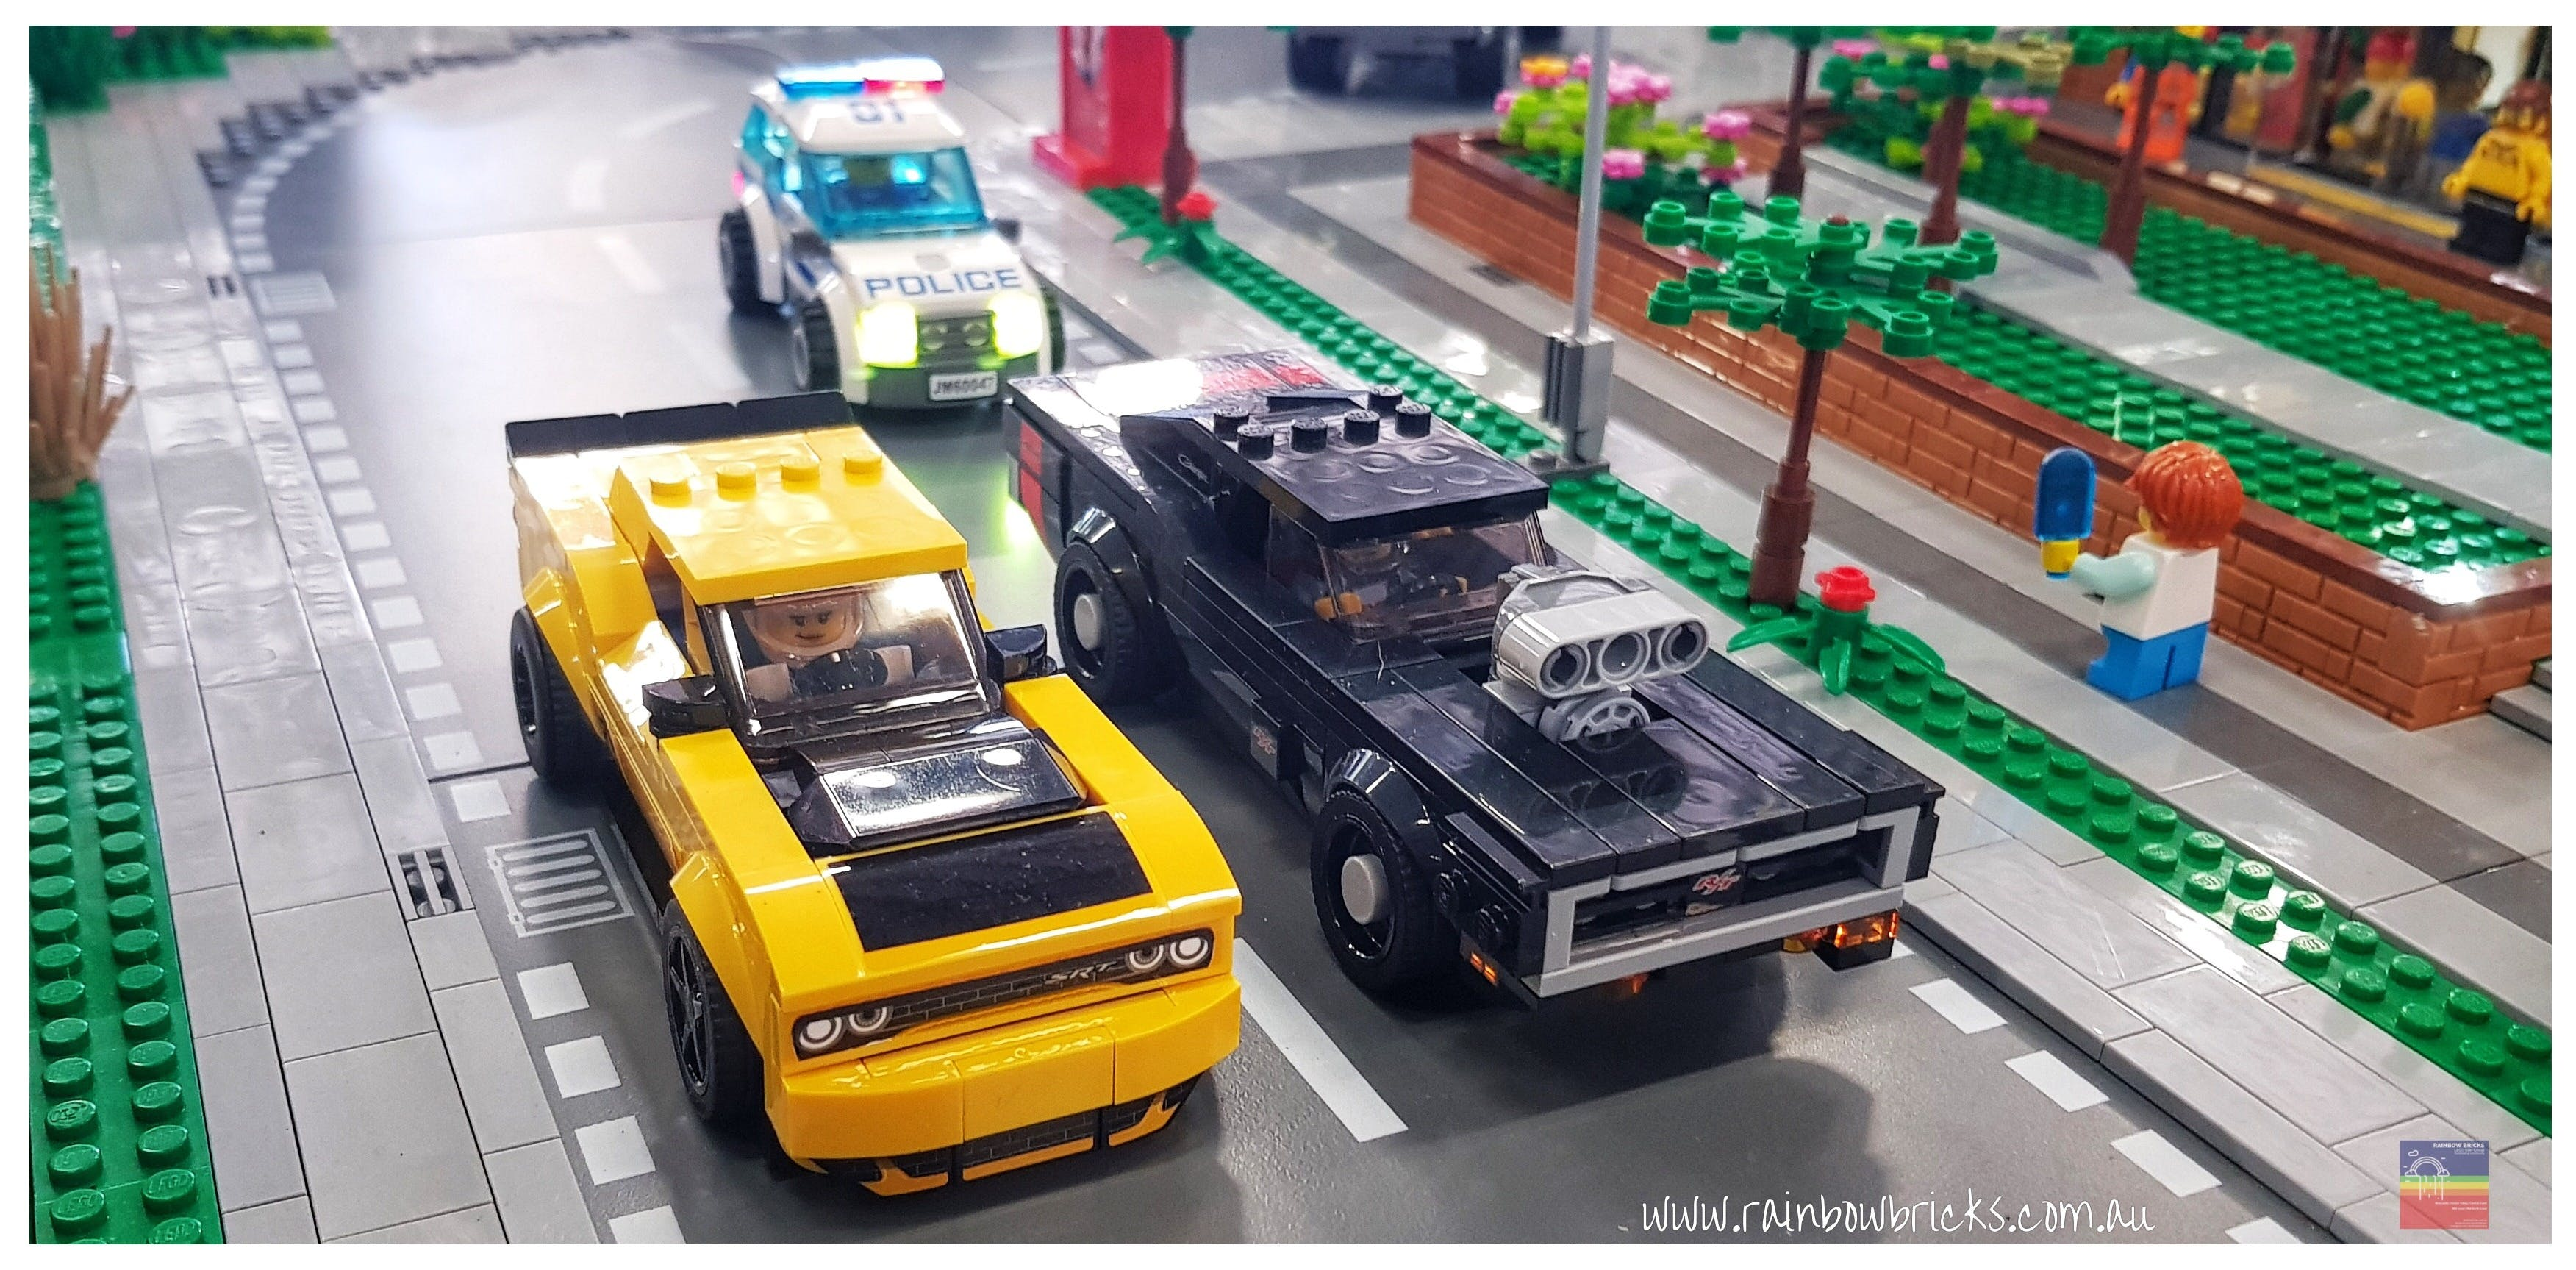 Brickfest at The Bay A Lego Fan Event - Accommodation Directory